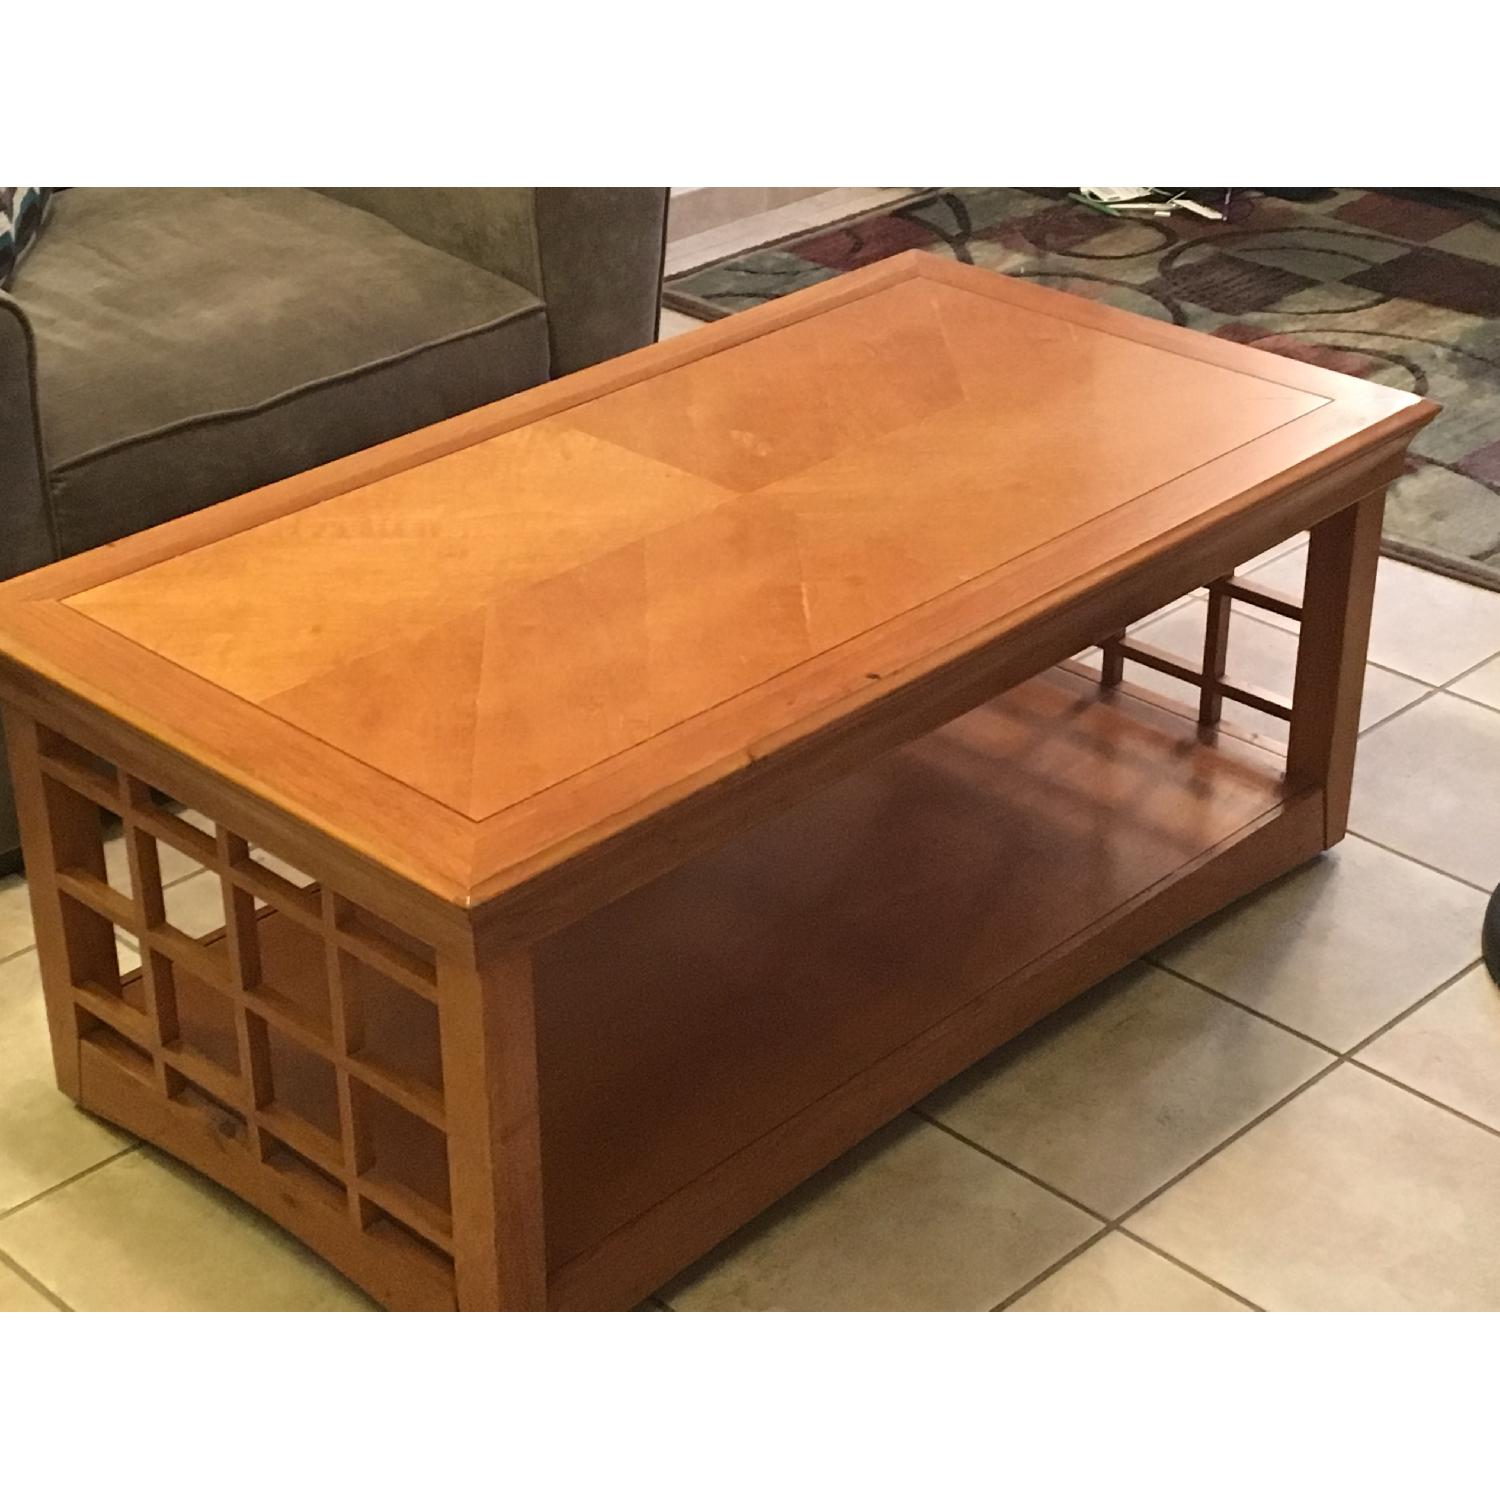 Furniture Options Wooden Coffee Table + 2 Matching End Tables - image-1